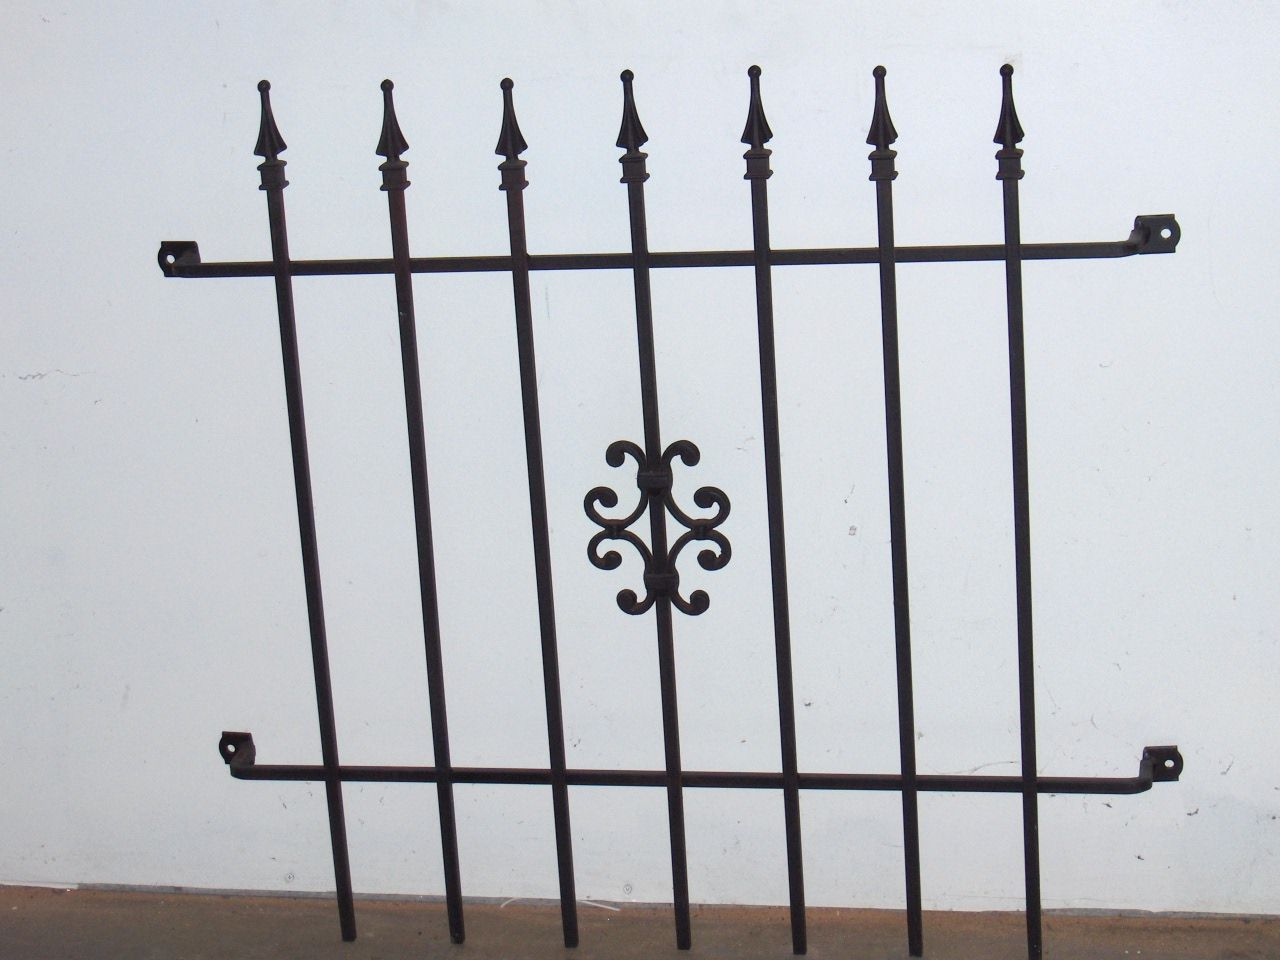 Wrought Iron Grill Designs For Windows Google Search - Home design window grills